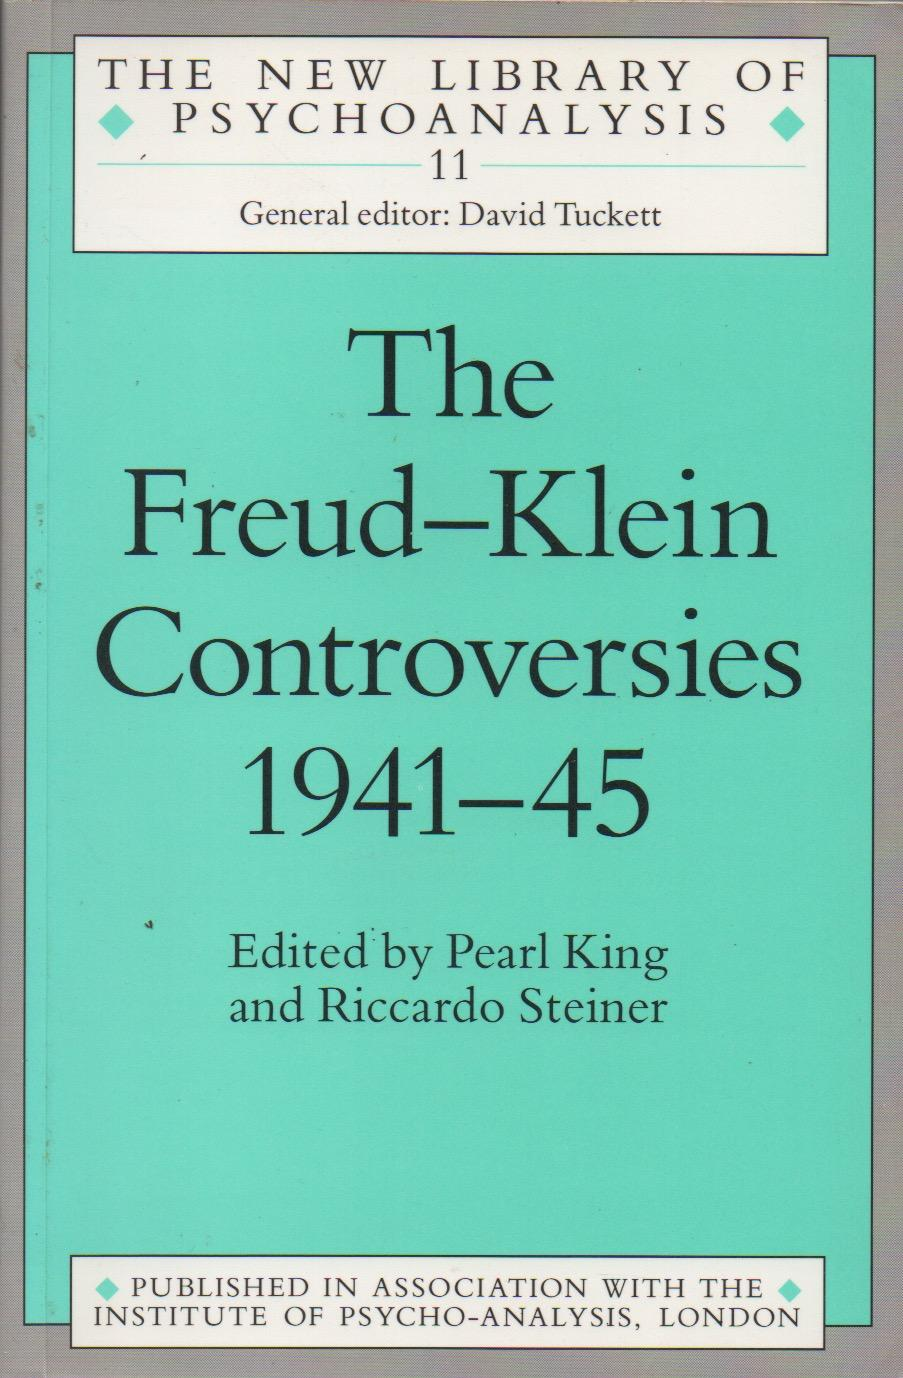 The Freud-Klein Controversies 1941-45 - King, Pearl and Steiner, Riccardo (Eds)